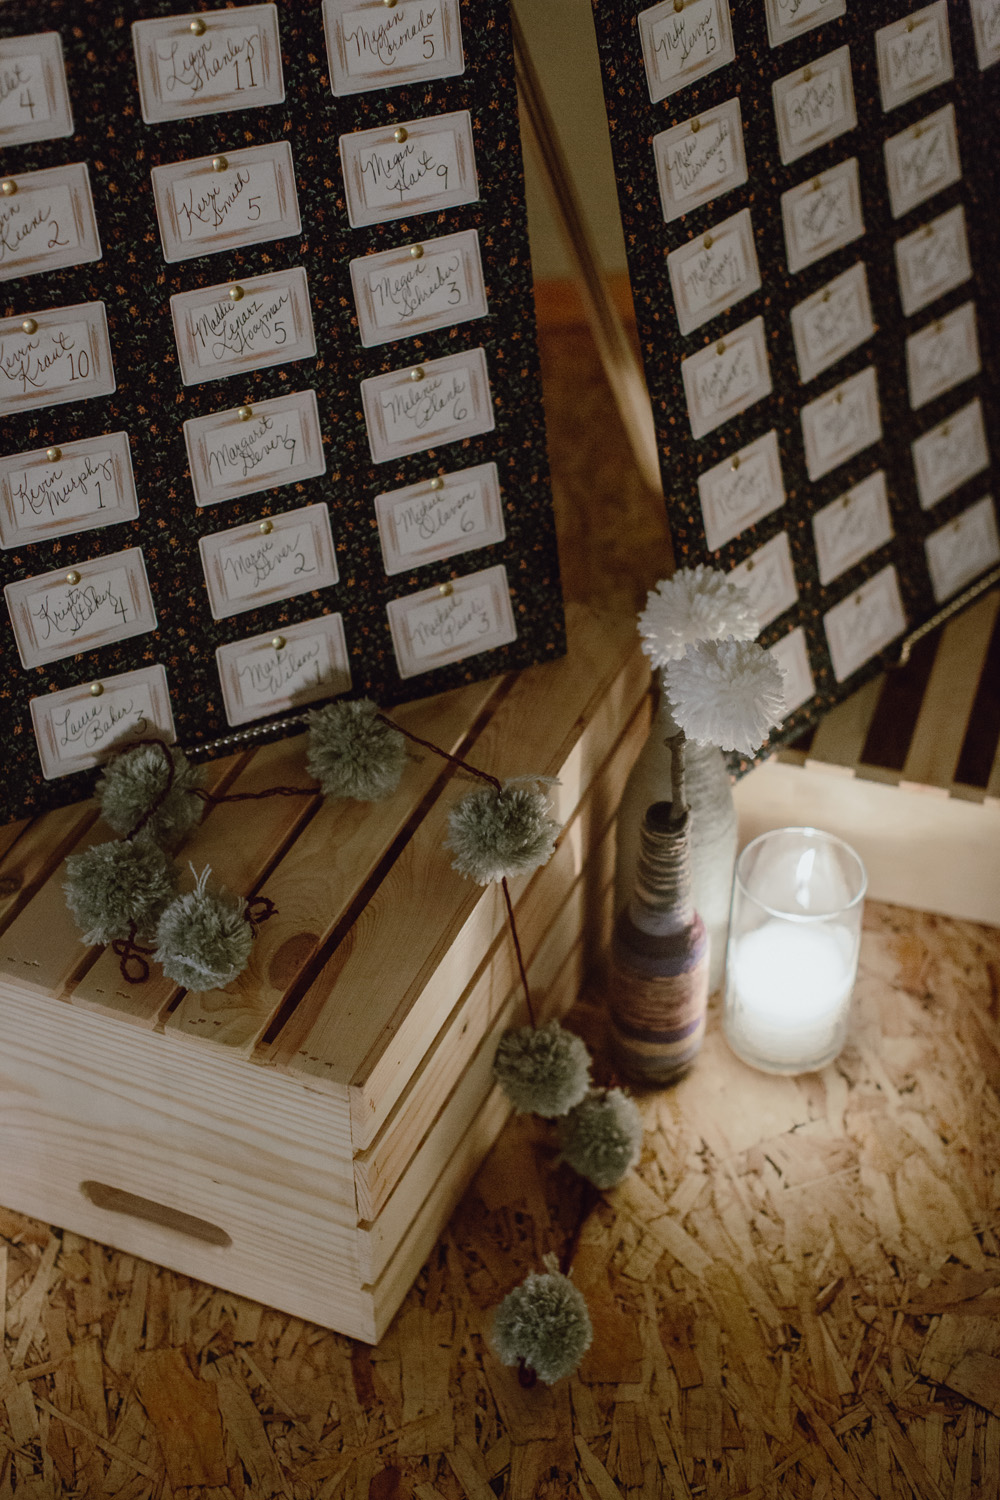 chicago-wedding-photography-at-city-view-loft-by-megan-saul-photography-reception-details-39-of-42